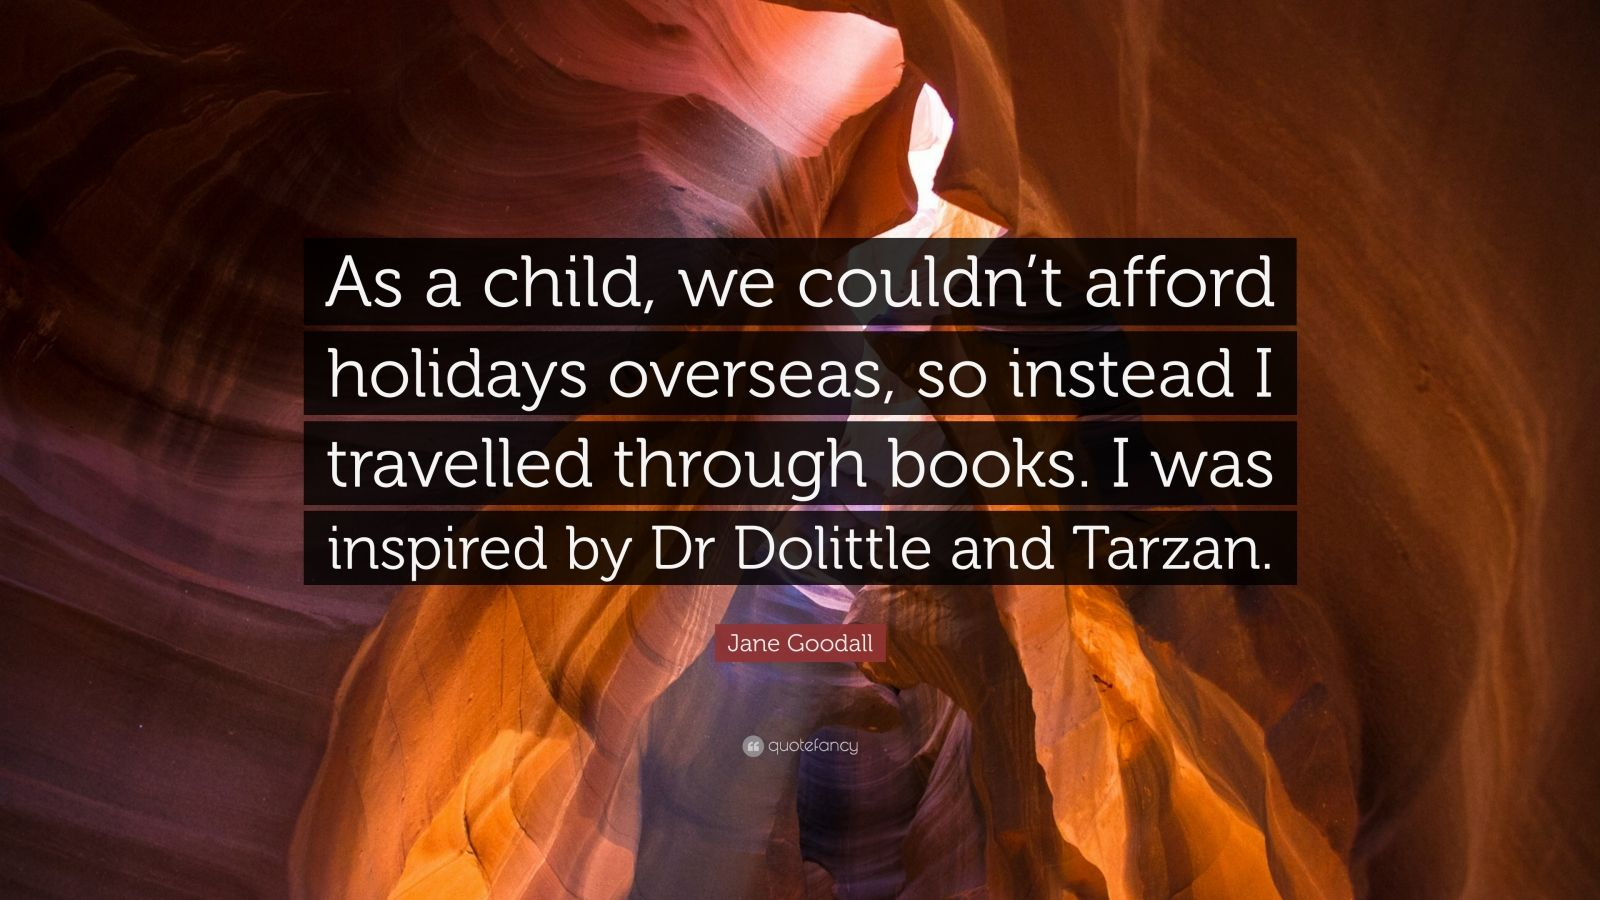 """Jane Goodall Quote: """"As a child, we couldn't afford holidays overseas, so instead I travelled through books. I was inspired by Dr Dolittle and Tarzan."""""""